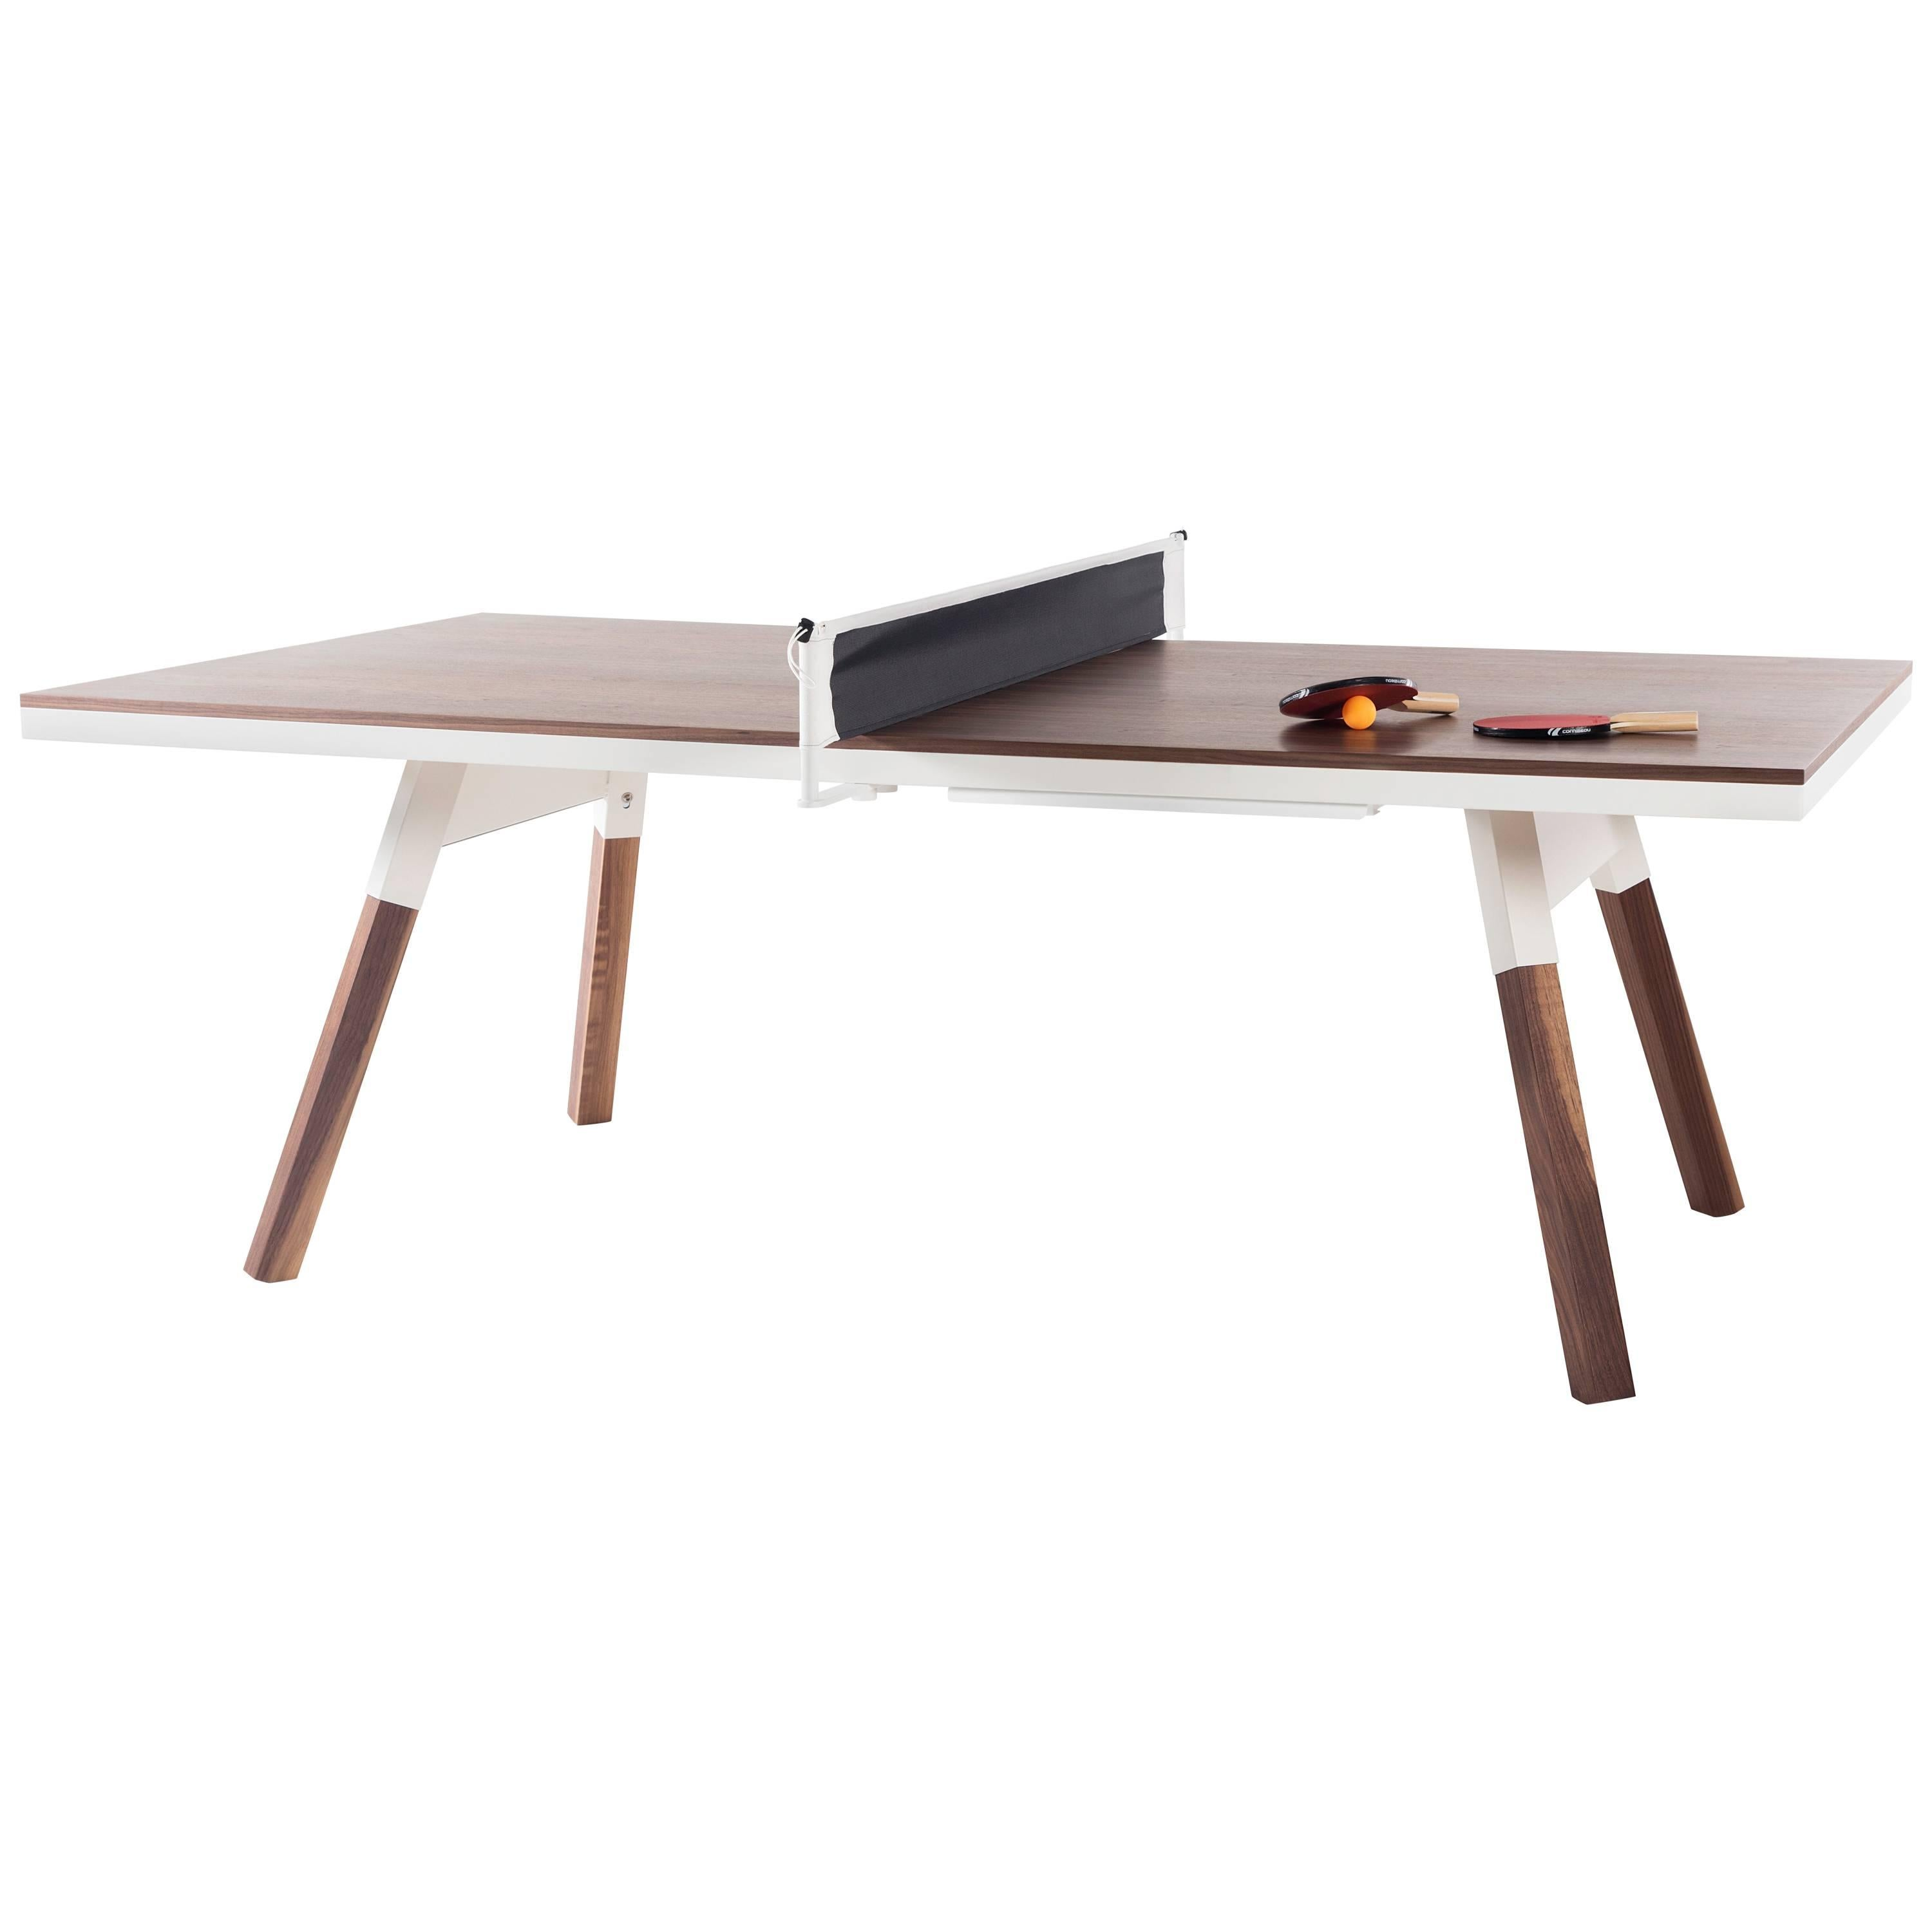 You U0026 Me Wooden Top 220 Ping Pong Table In Walnut And White By RS Barcelona